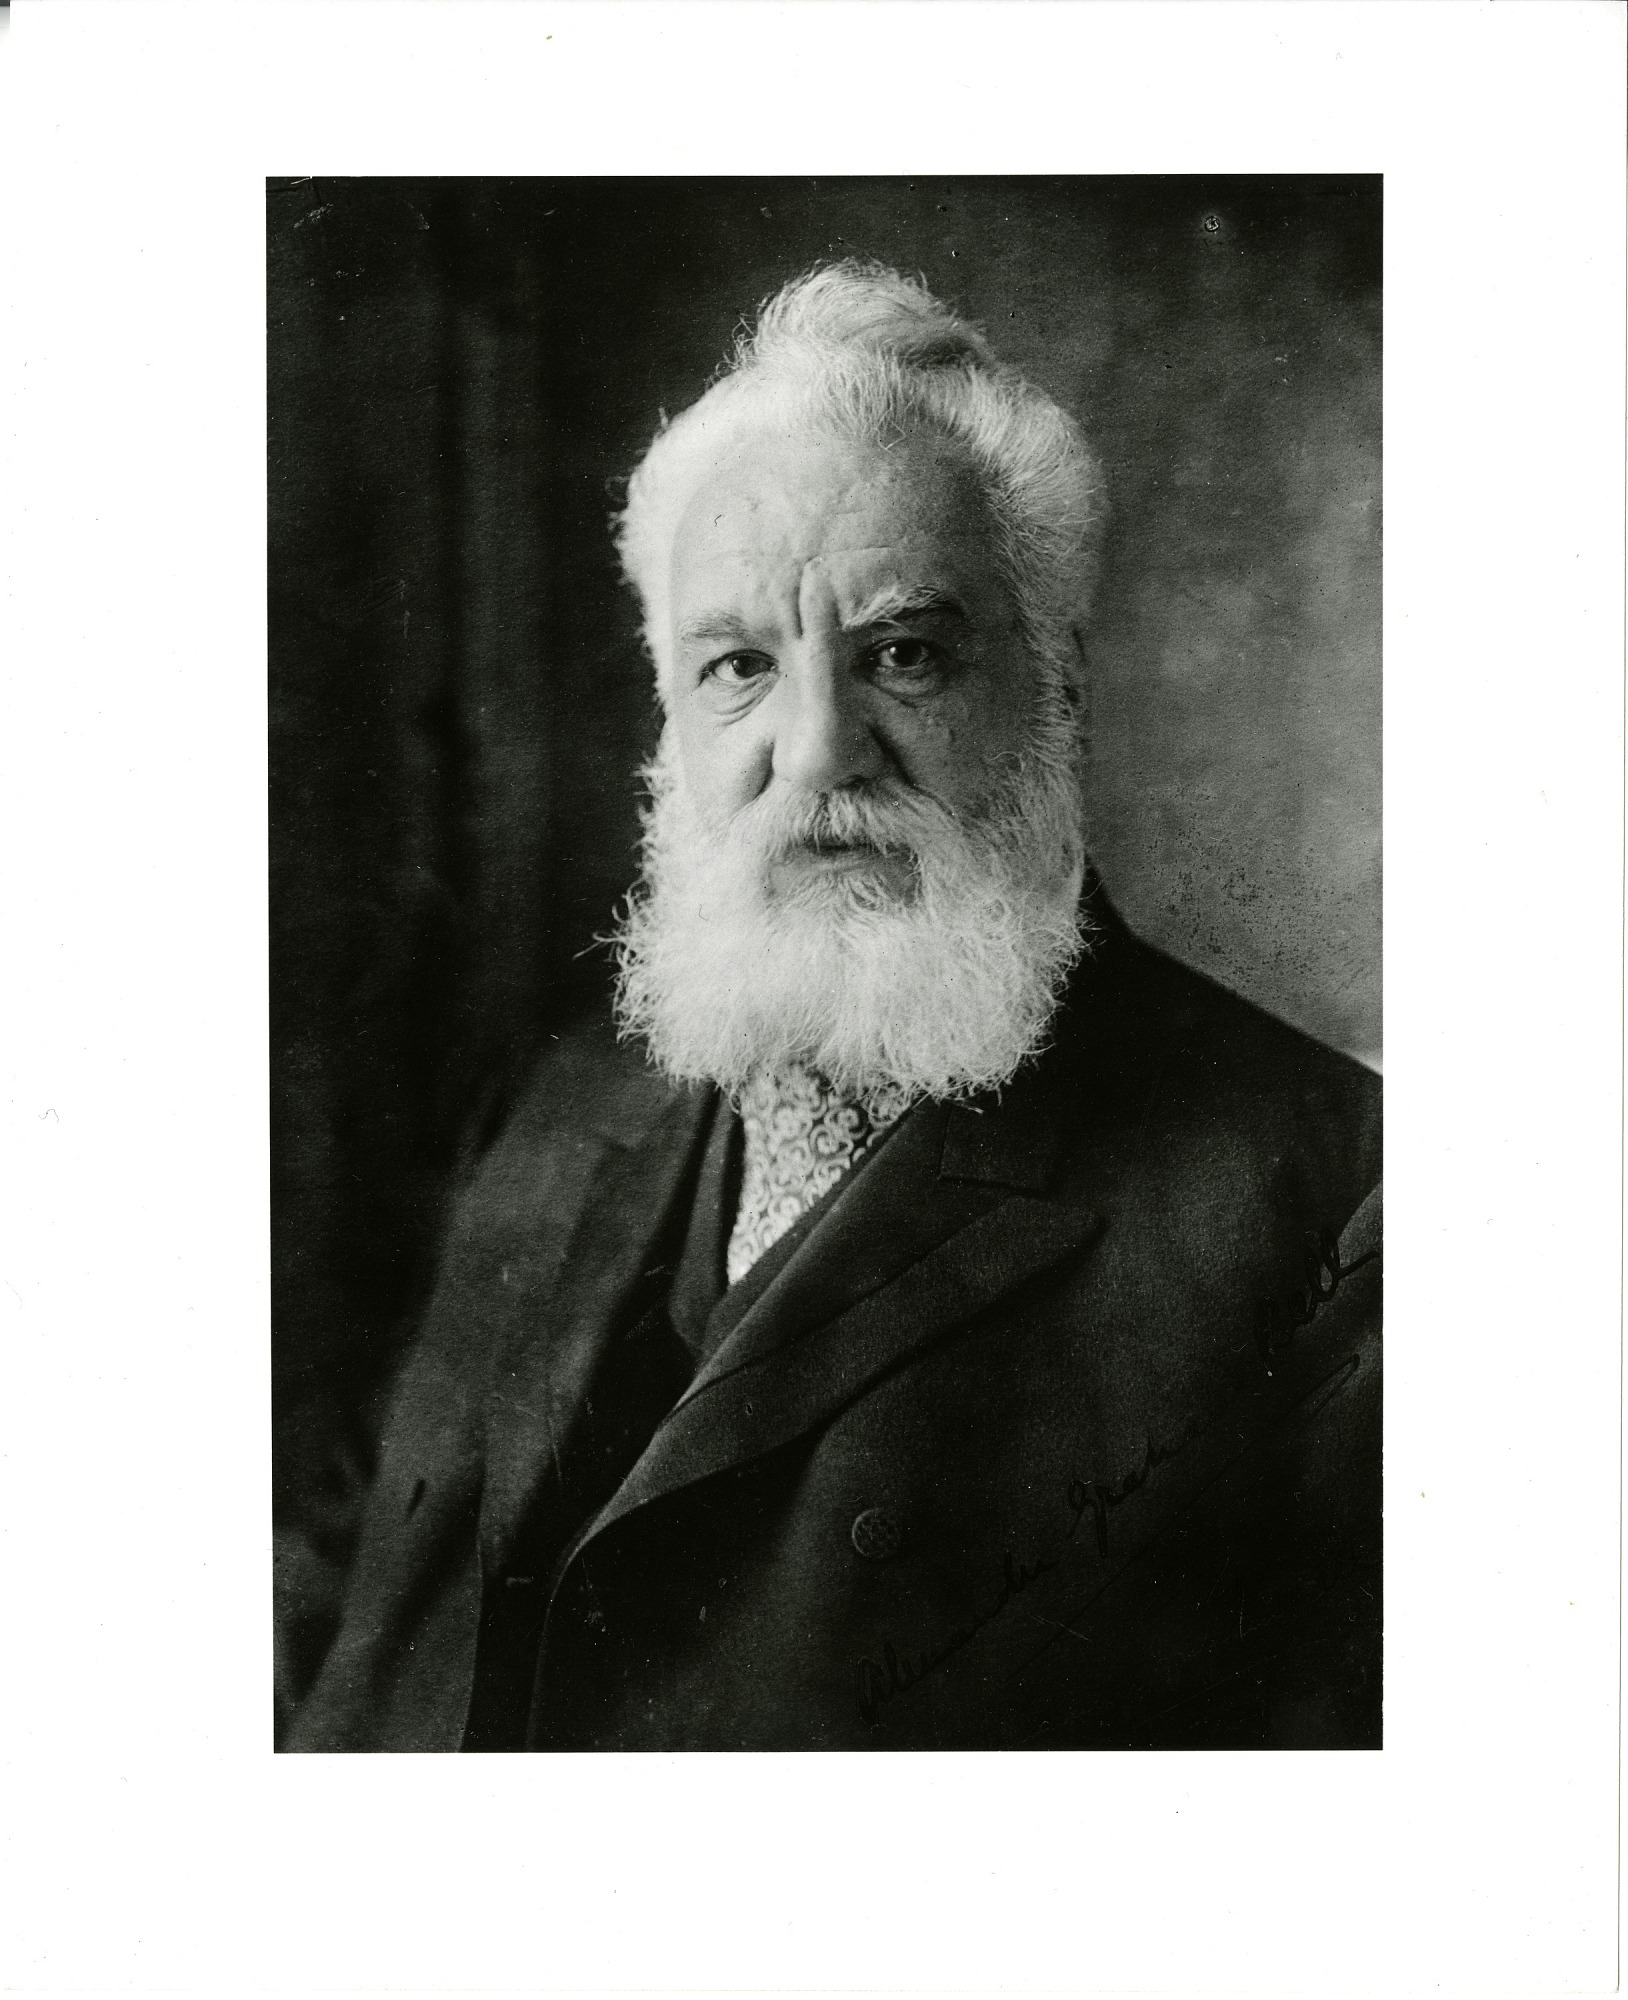 Alexander Graham Bell, by Unknown, c. 1910s, Smithsonian Archives - History Div, SIA2012-1088 or 41768-A.